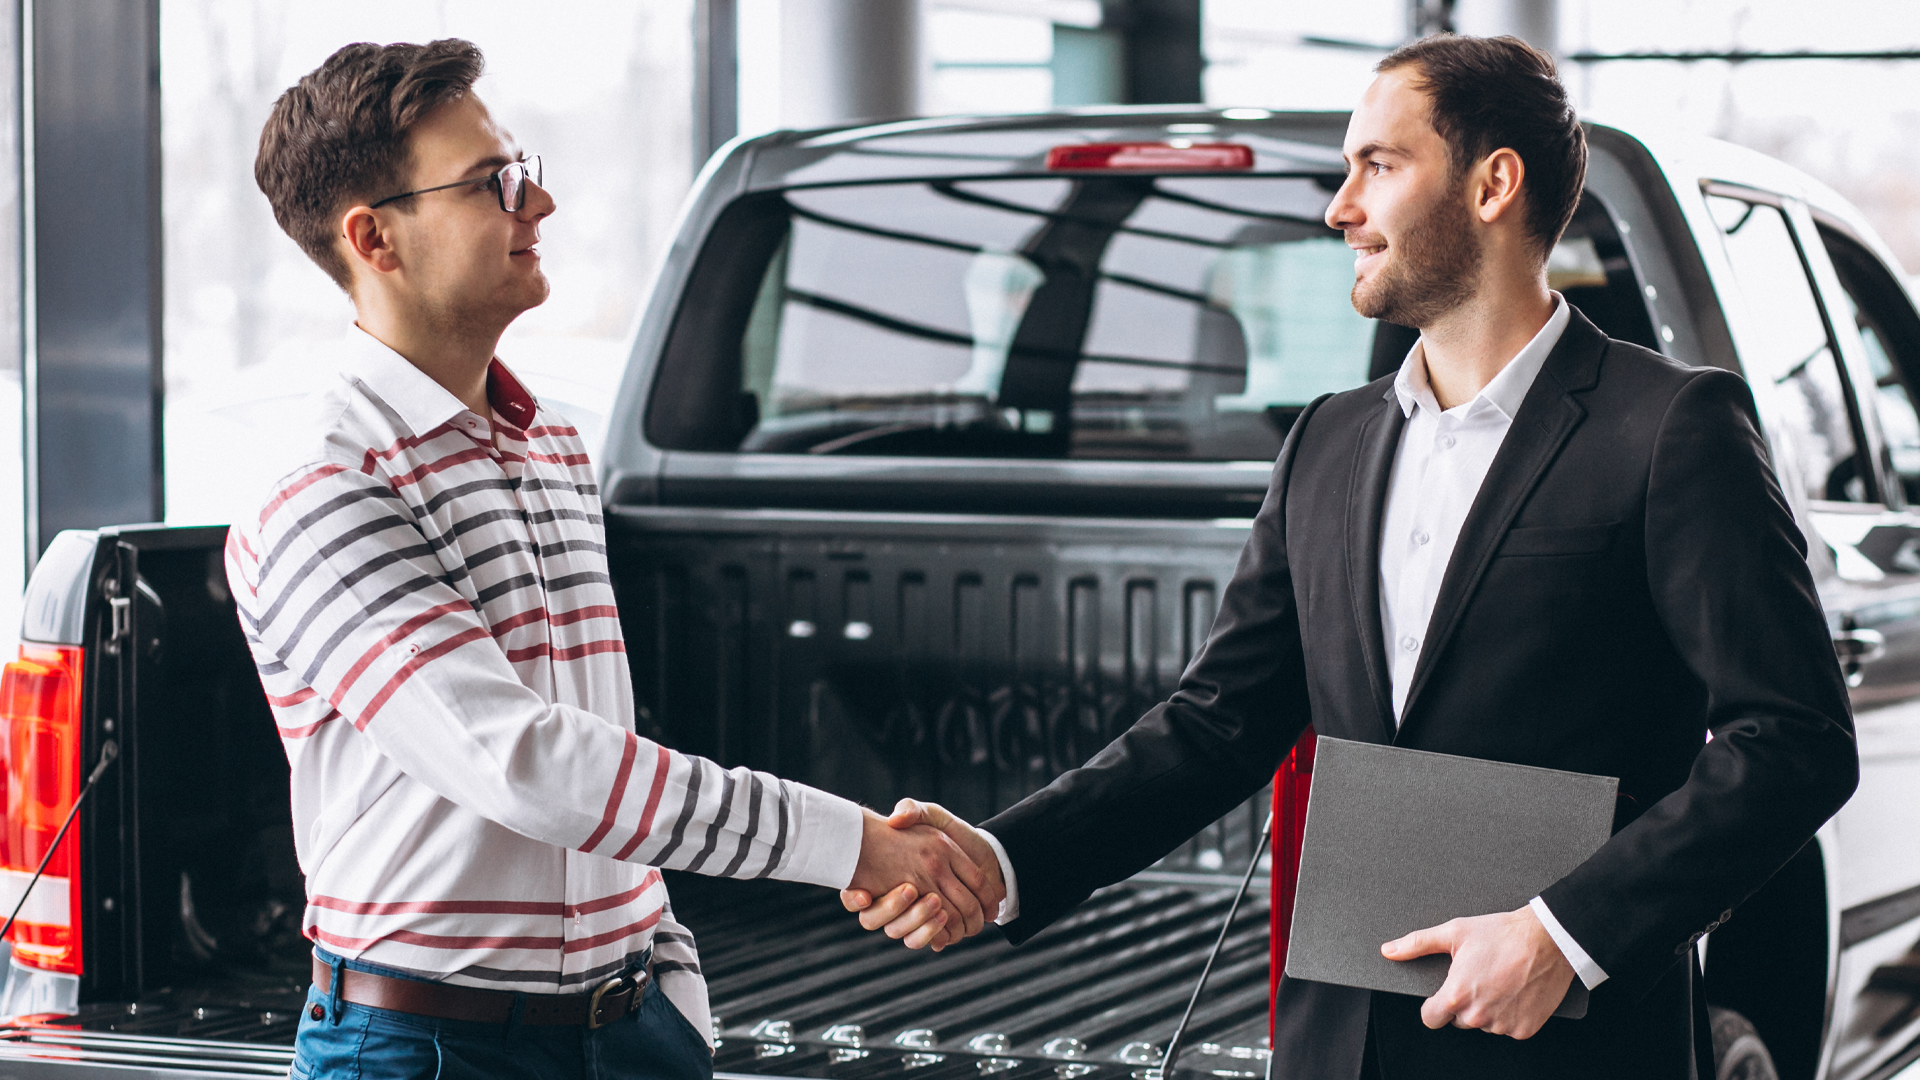 Two men shaking hands behind a truck.